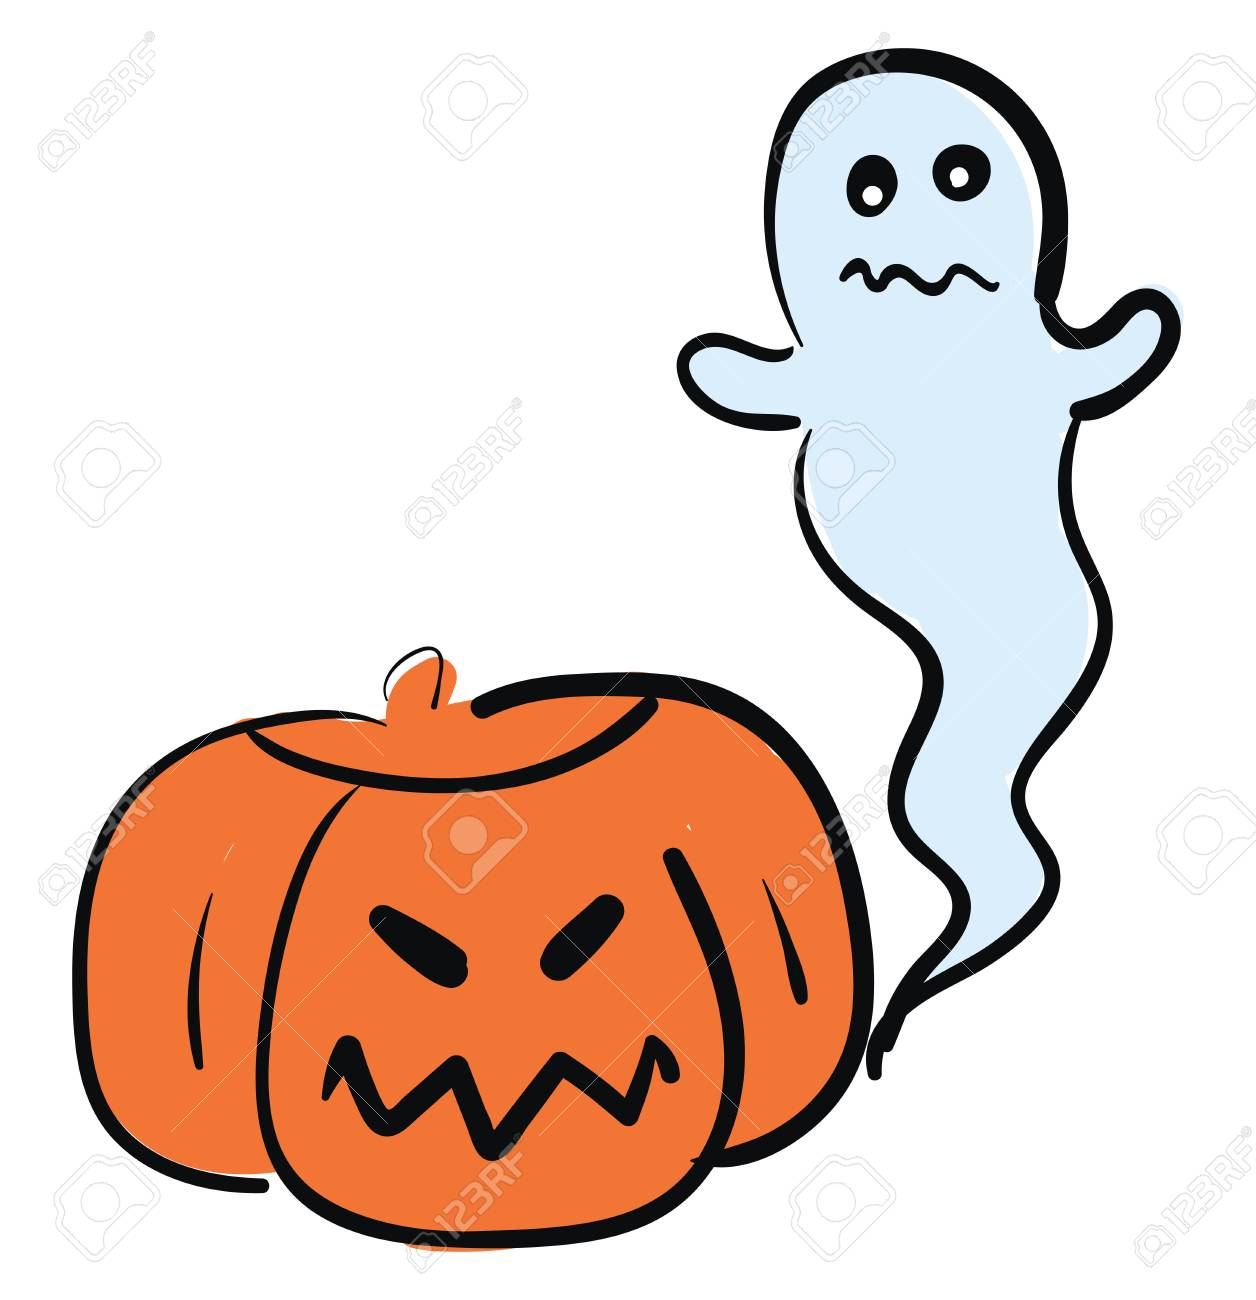 A Picture Of A Ghost And A Jack O Lantern Used During Halloween Royalty Free Cliparts Vectors And Stock Illustration Image 123412331